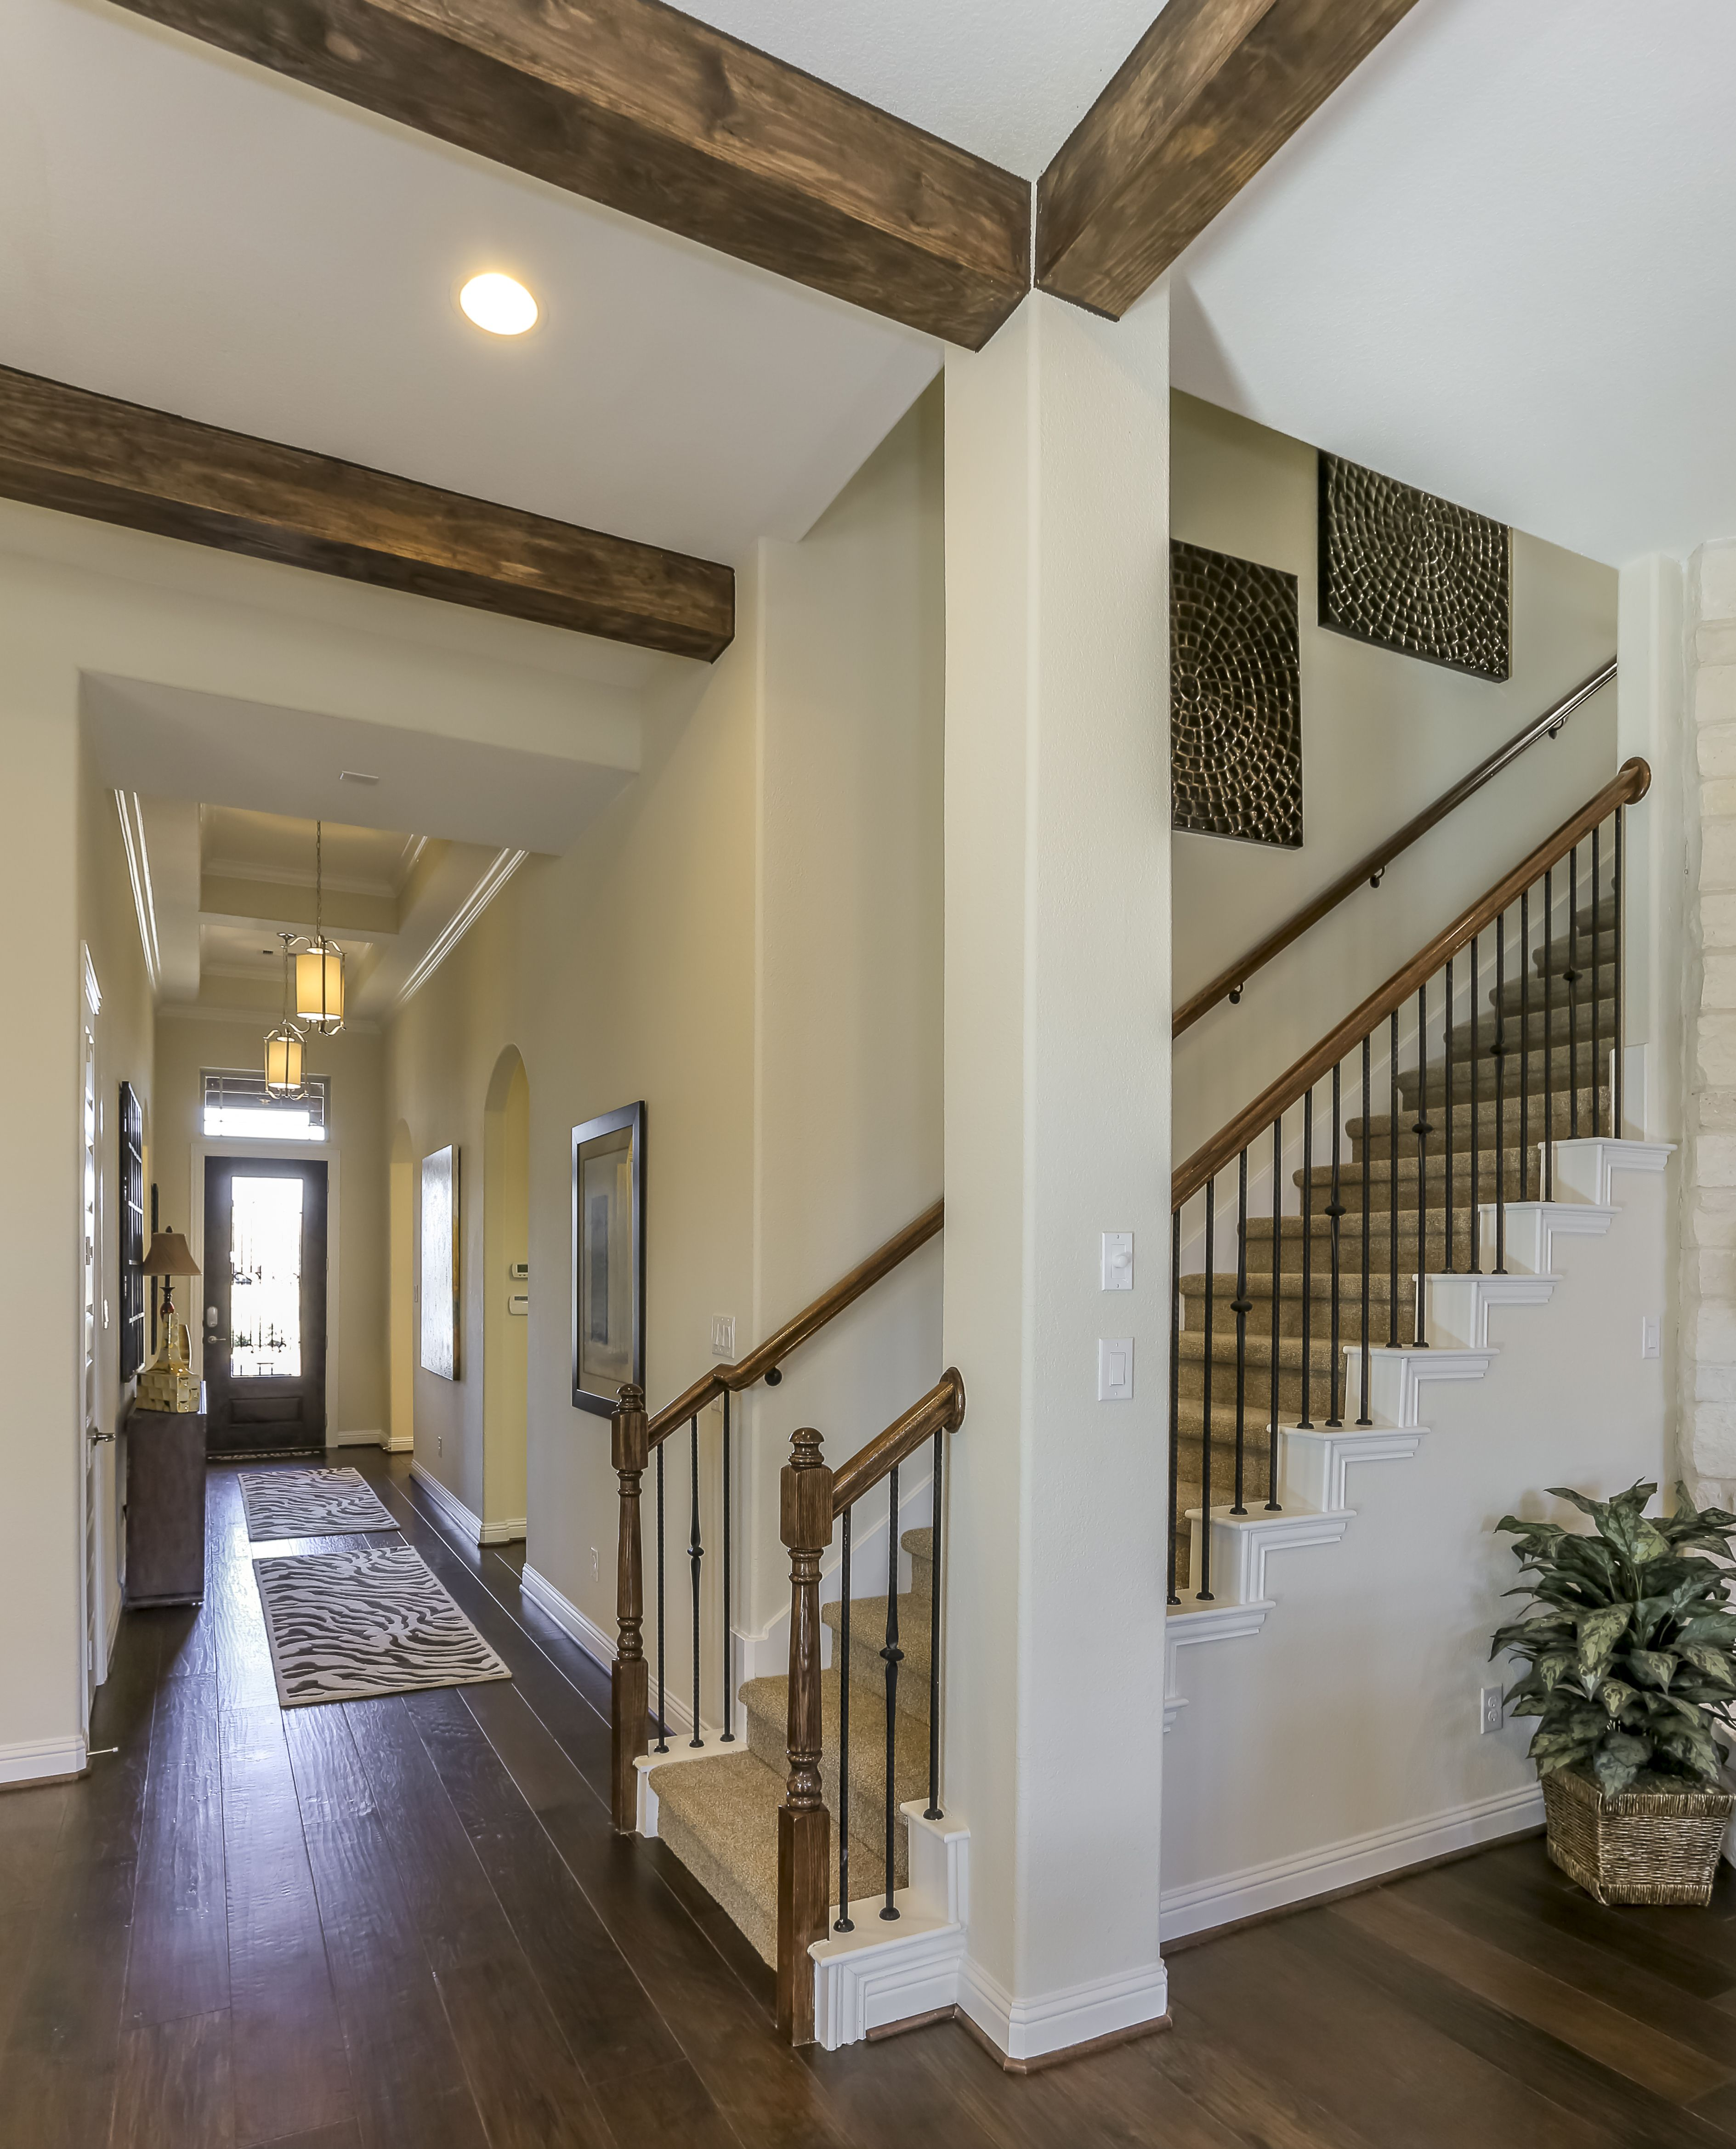 Gehan Homes Stairway  Carpet Tread, Medium Hardwood Flooring, Medium Rustic  Beam Ceilings